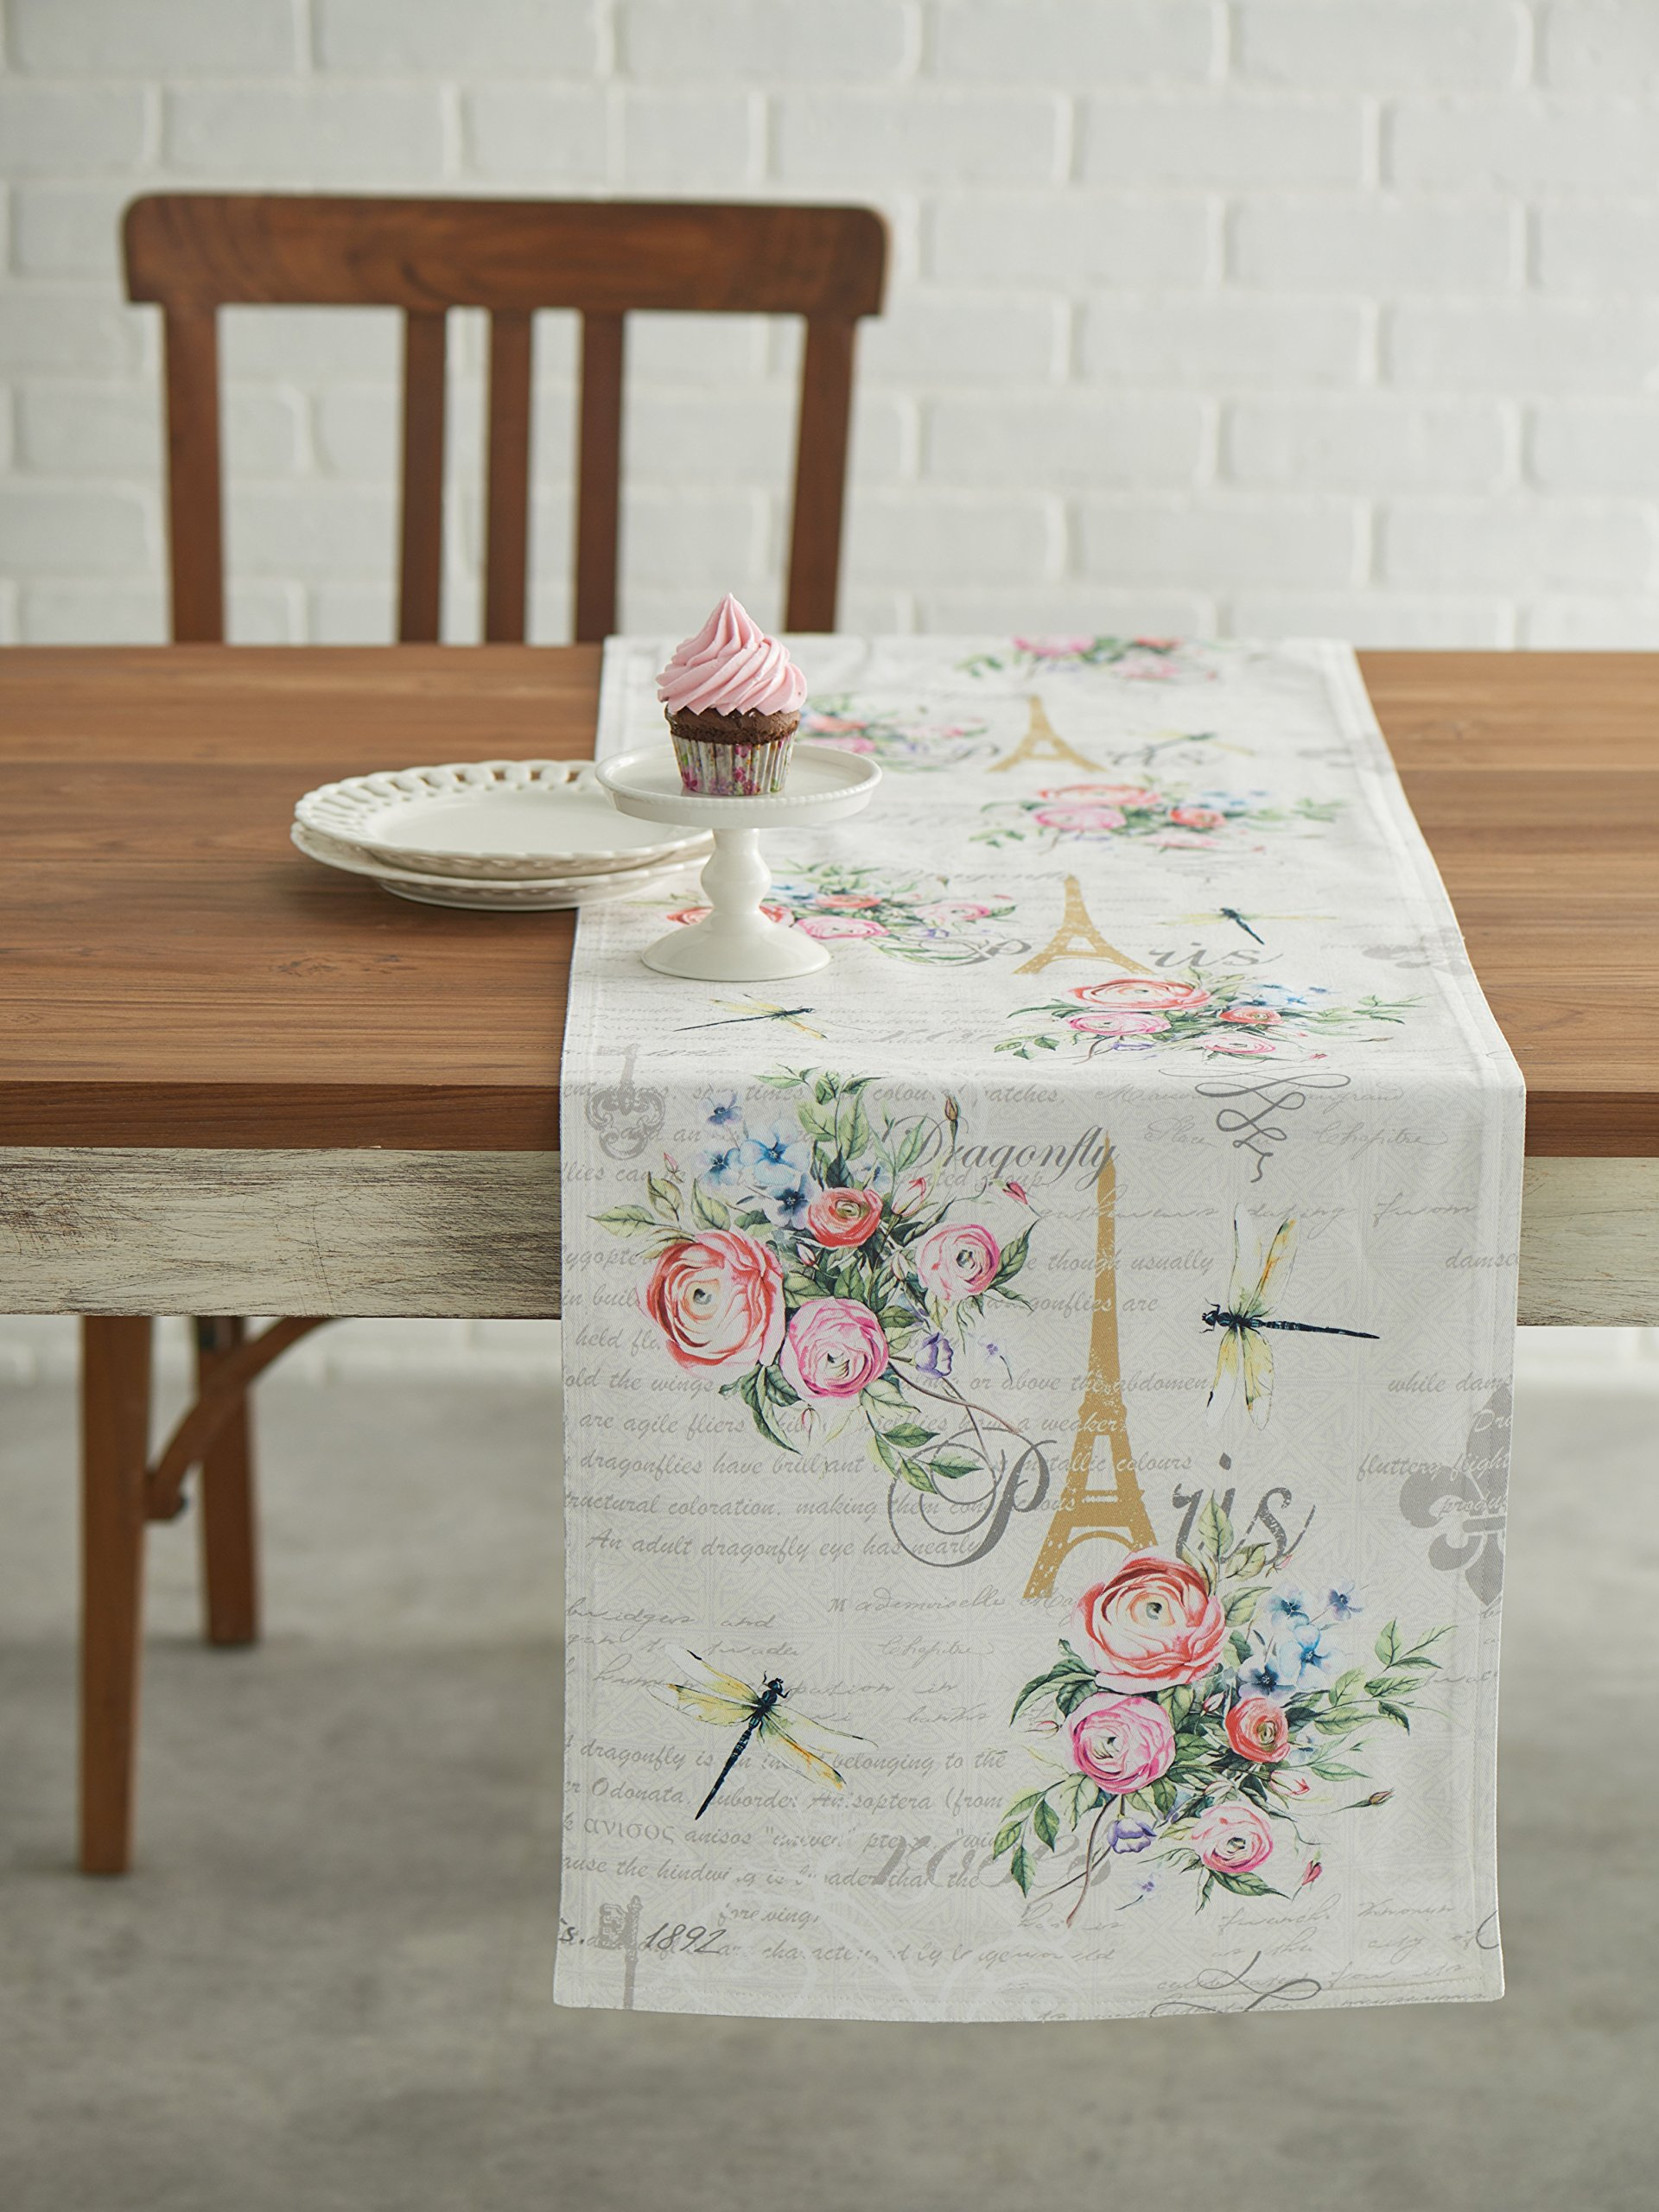 Maison d' Hermine Champ De Mars 100% Cotton Table Runner for Party | Dinner | Holidays | Kitchen | Spring/Summer (14.5 Inch by 72 Inch) - Designed in Europe. 100% Cotton and Machine washable. Package Includes : 1 Table Runner - table-runners, kitchen-dining-room-table-linens, kitchen-dining-room - 91cTkzmninL -